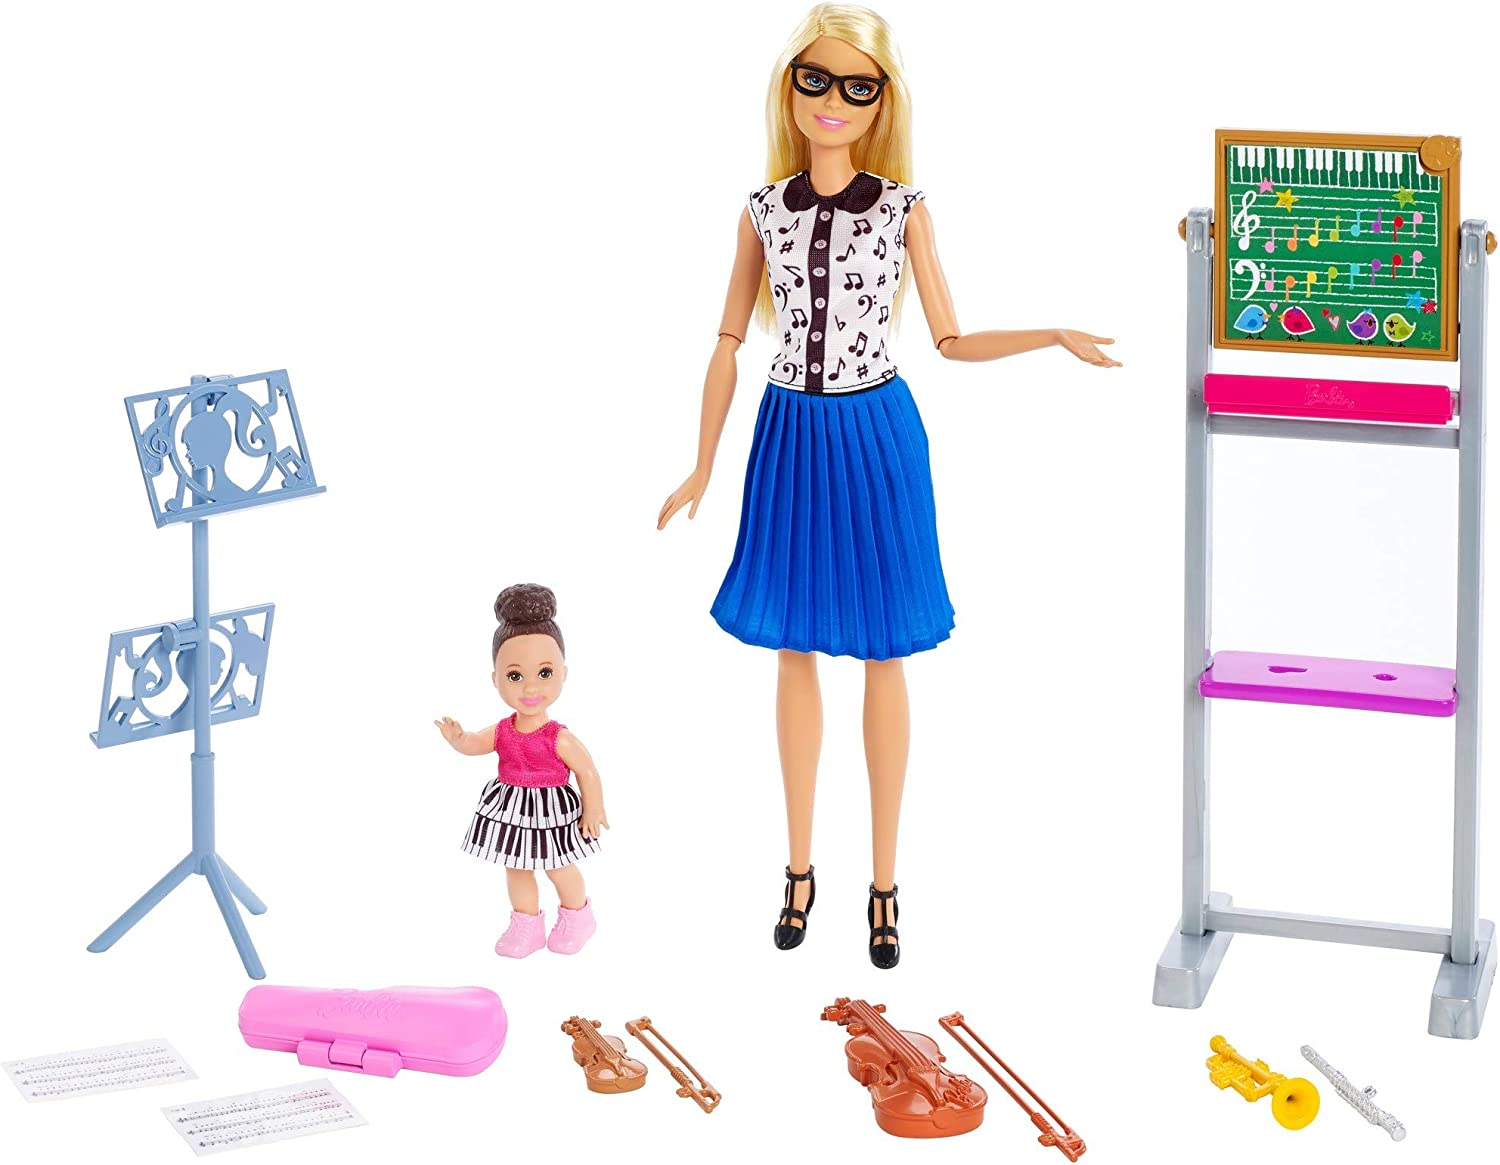 Barbie Music Teacher Doll, Blonde, and Playset with Flipping Chalkboard, Brunette Student Small Doll and 4 Musical Instruments, Career-Themed Toy for 3 to 7 Year Old Kids​​​